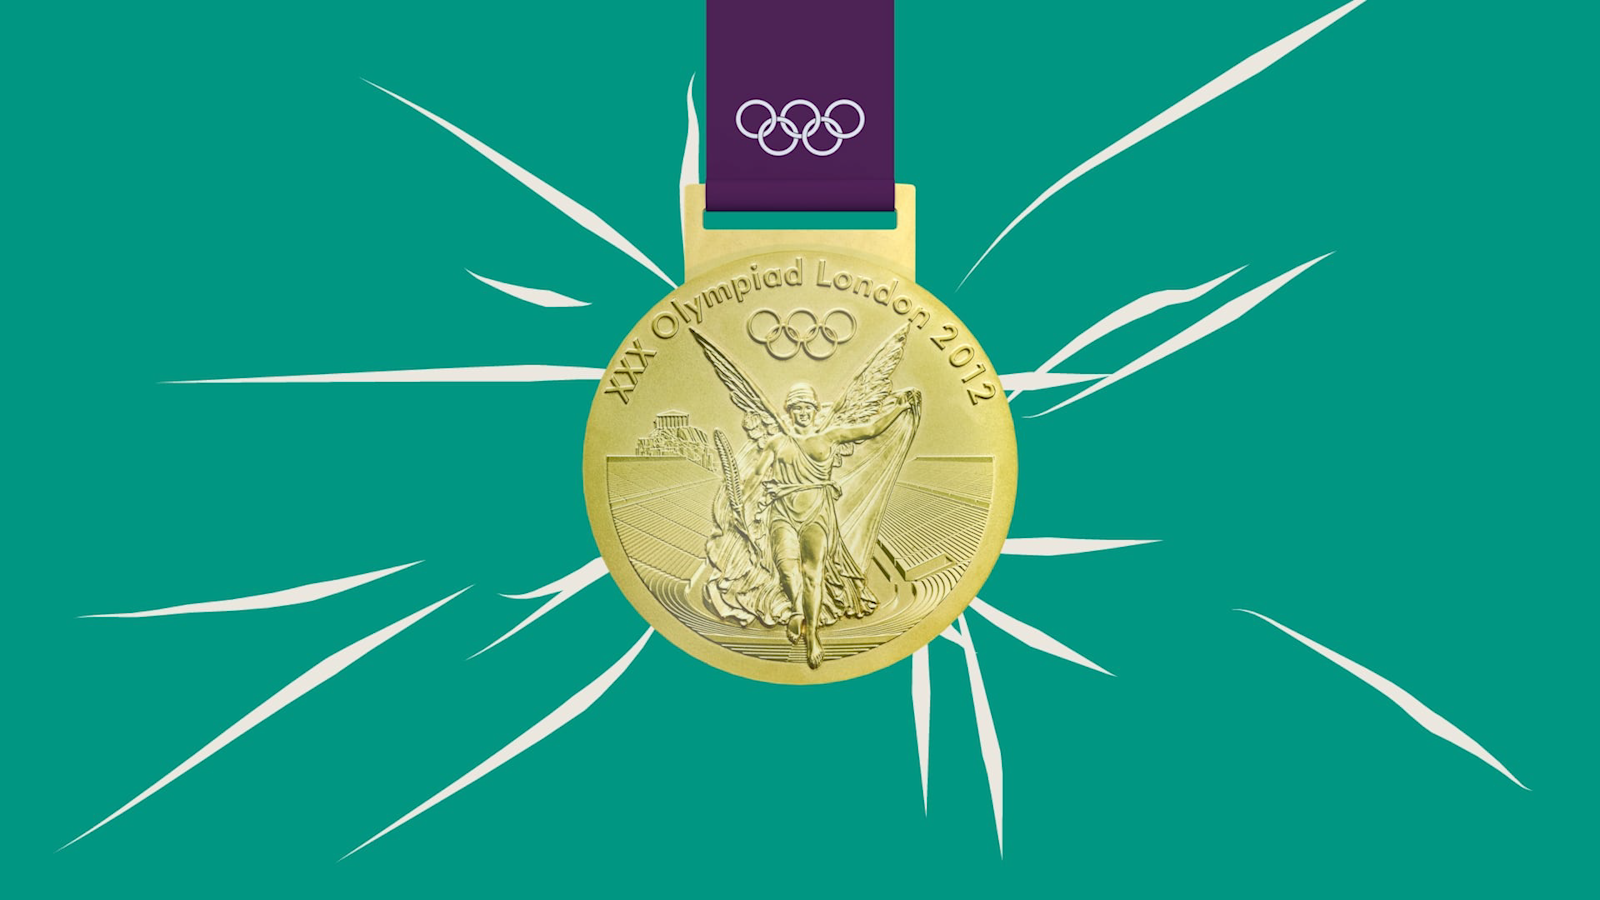 Olympiad London 2012 Medal